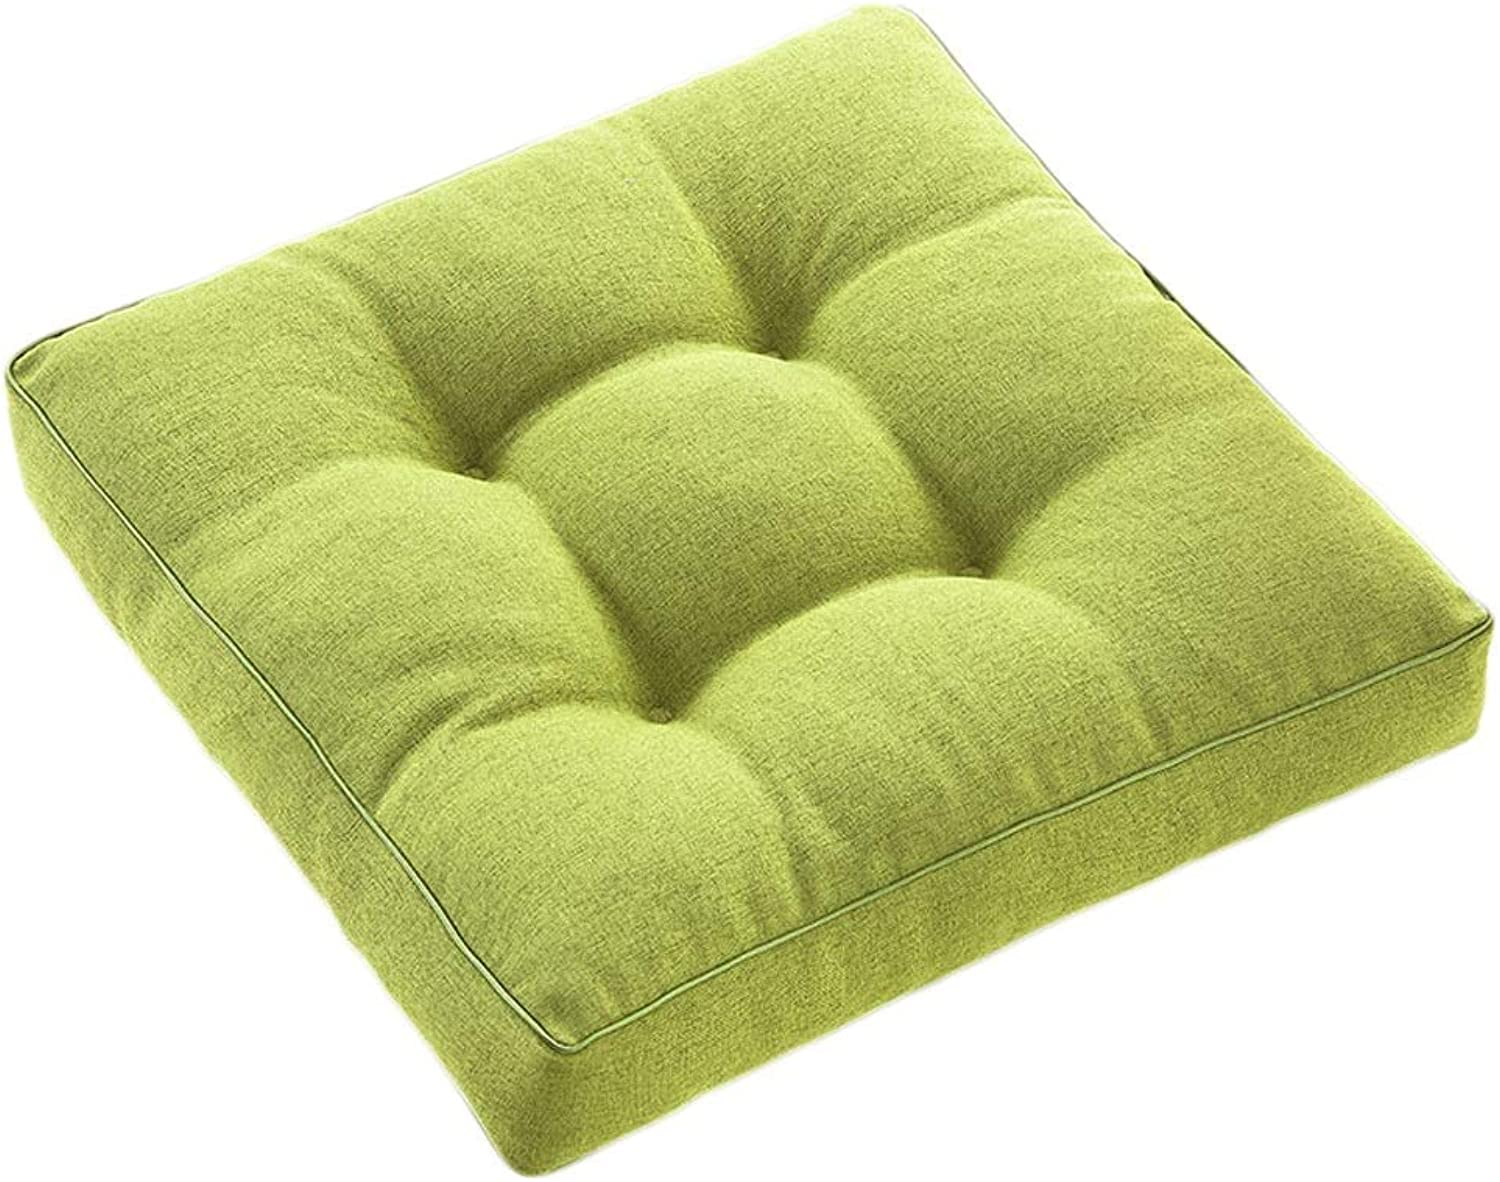 Seat Cushion Seat Cushion Green Flax Cushion Thicken Student Chair Cushion Sofa Office Chair Lumbar Support Four Seasons Available Soft and Comfortable Chair Pad (color   A, Size   40  40  8cm)